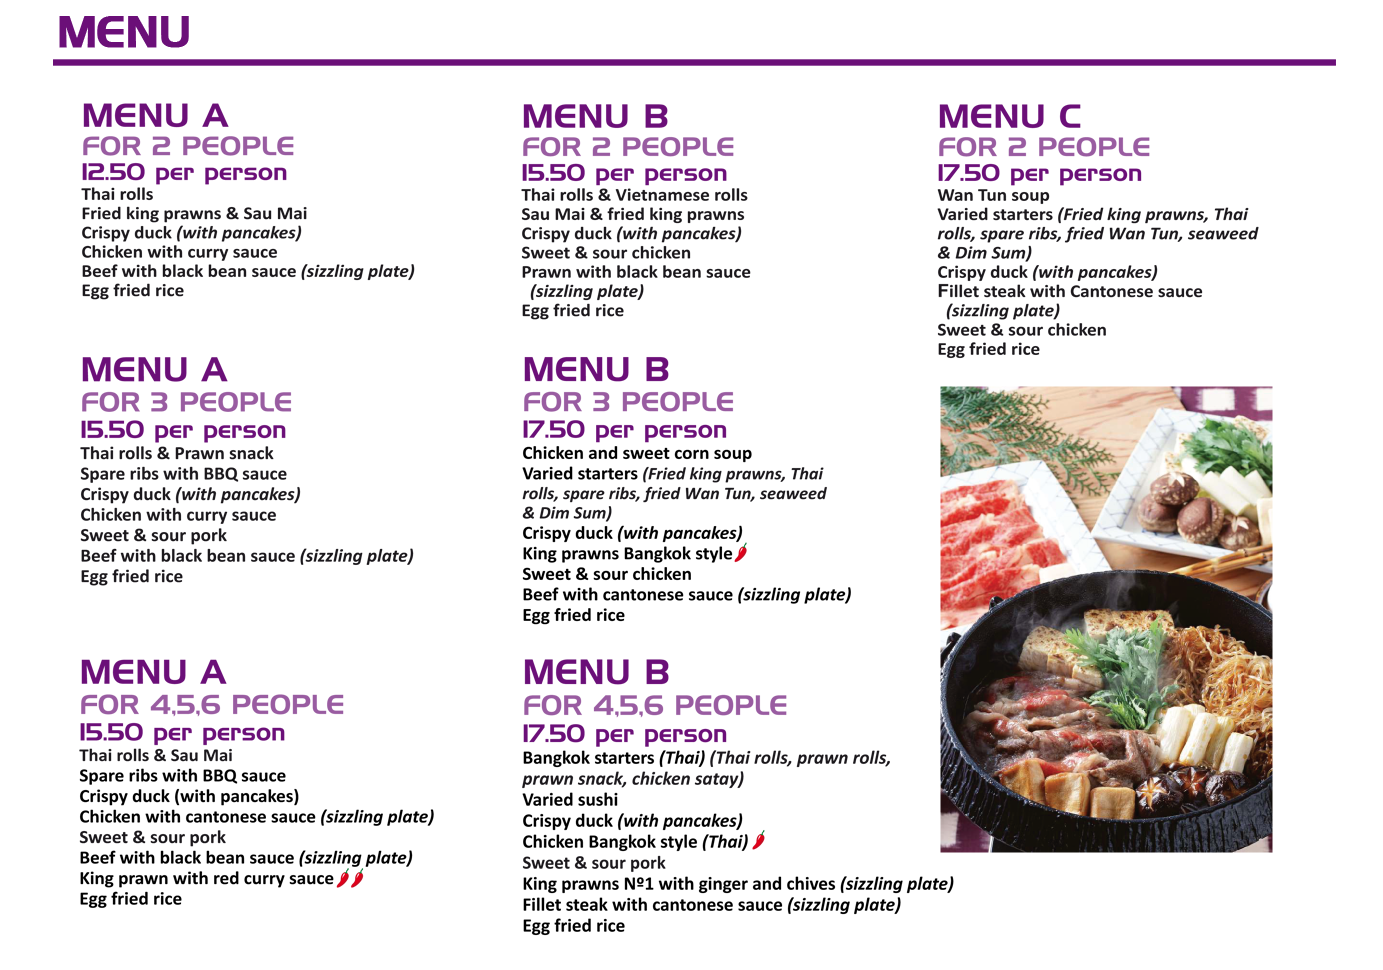 carta-ingles menus